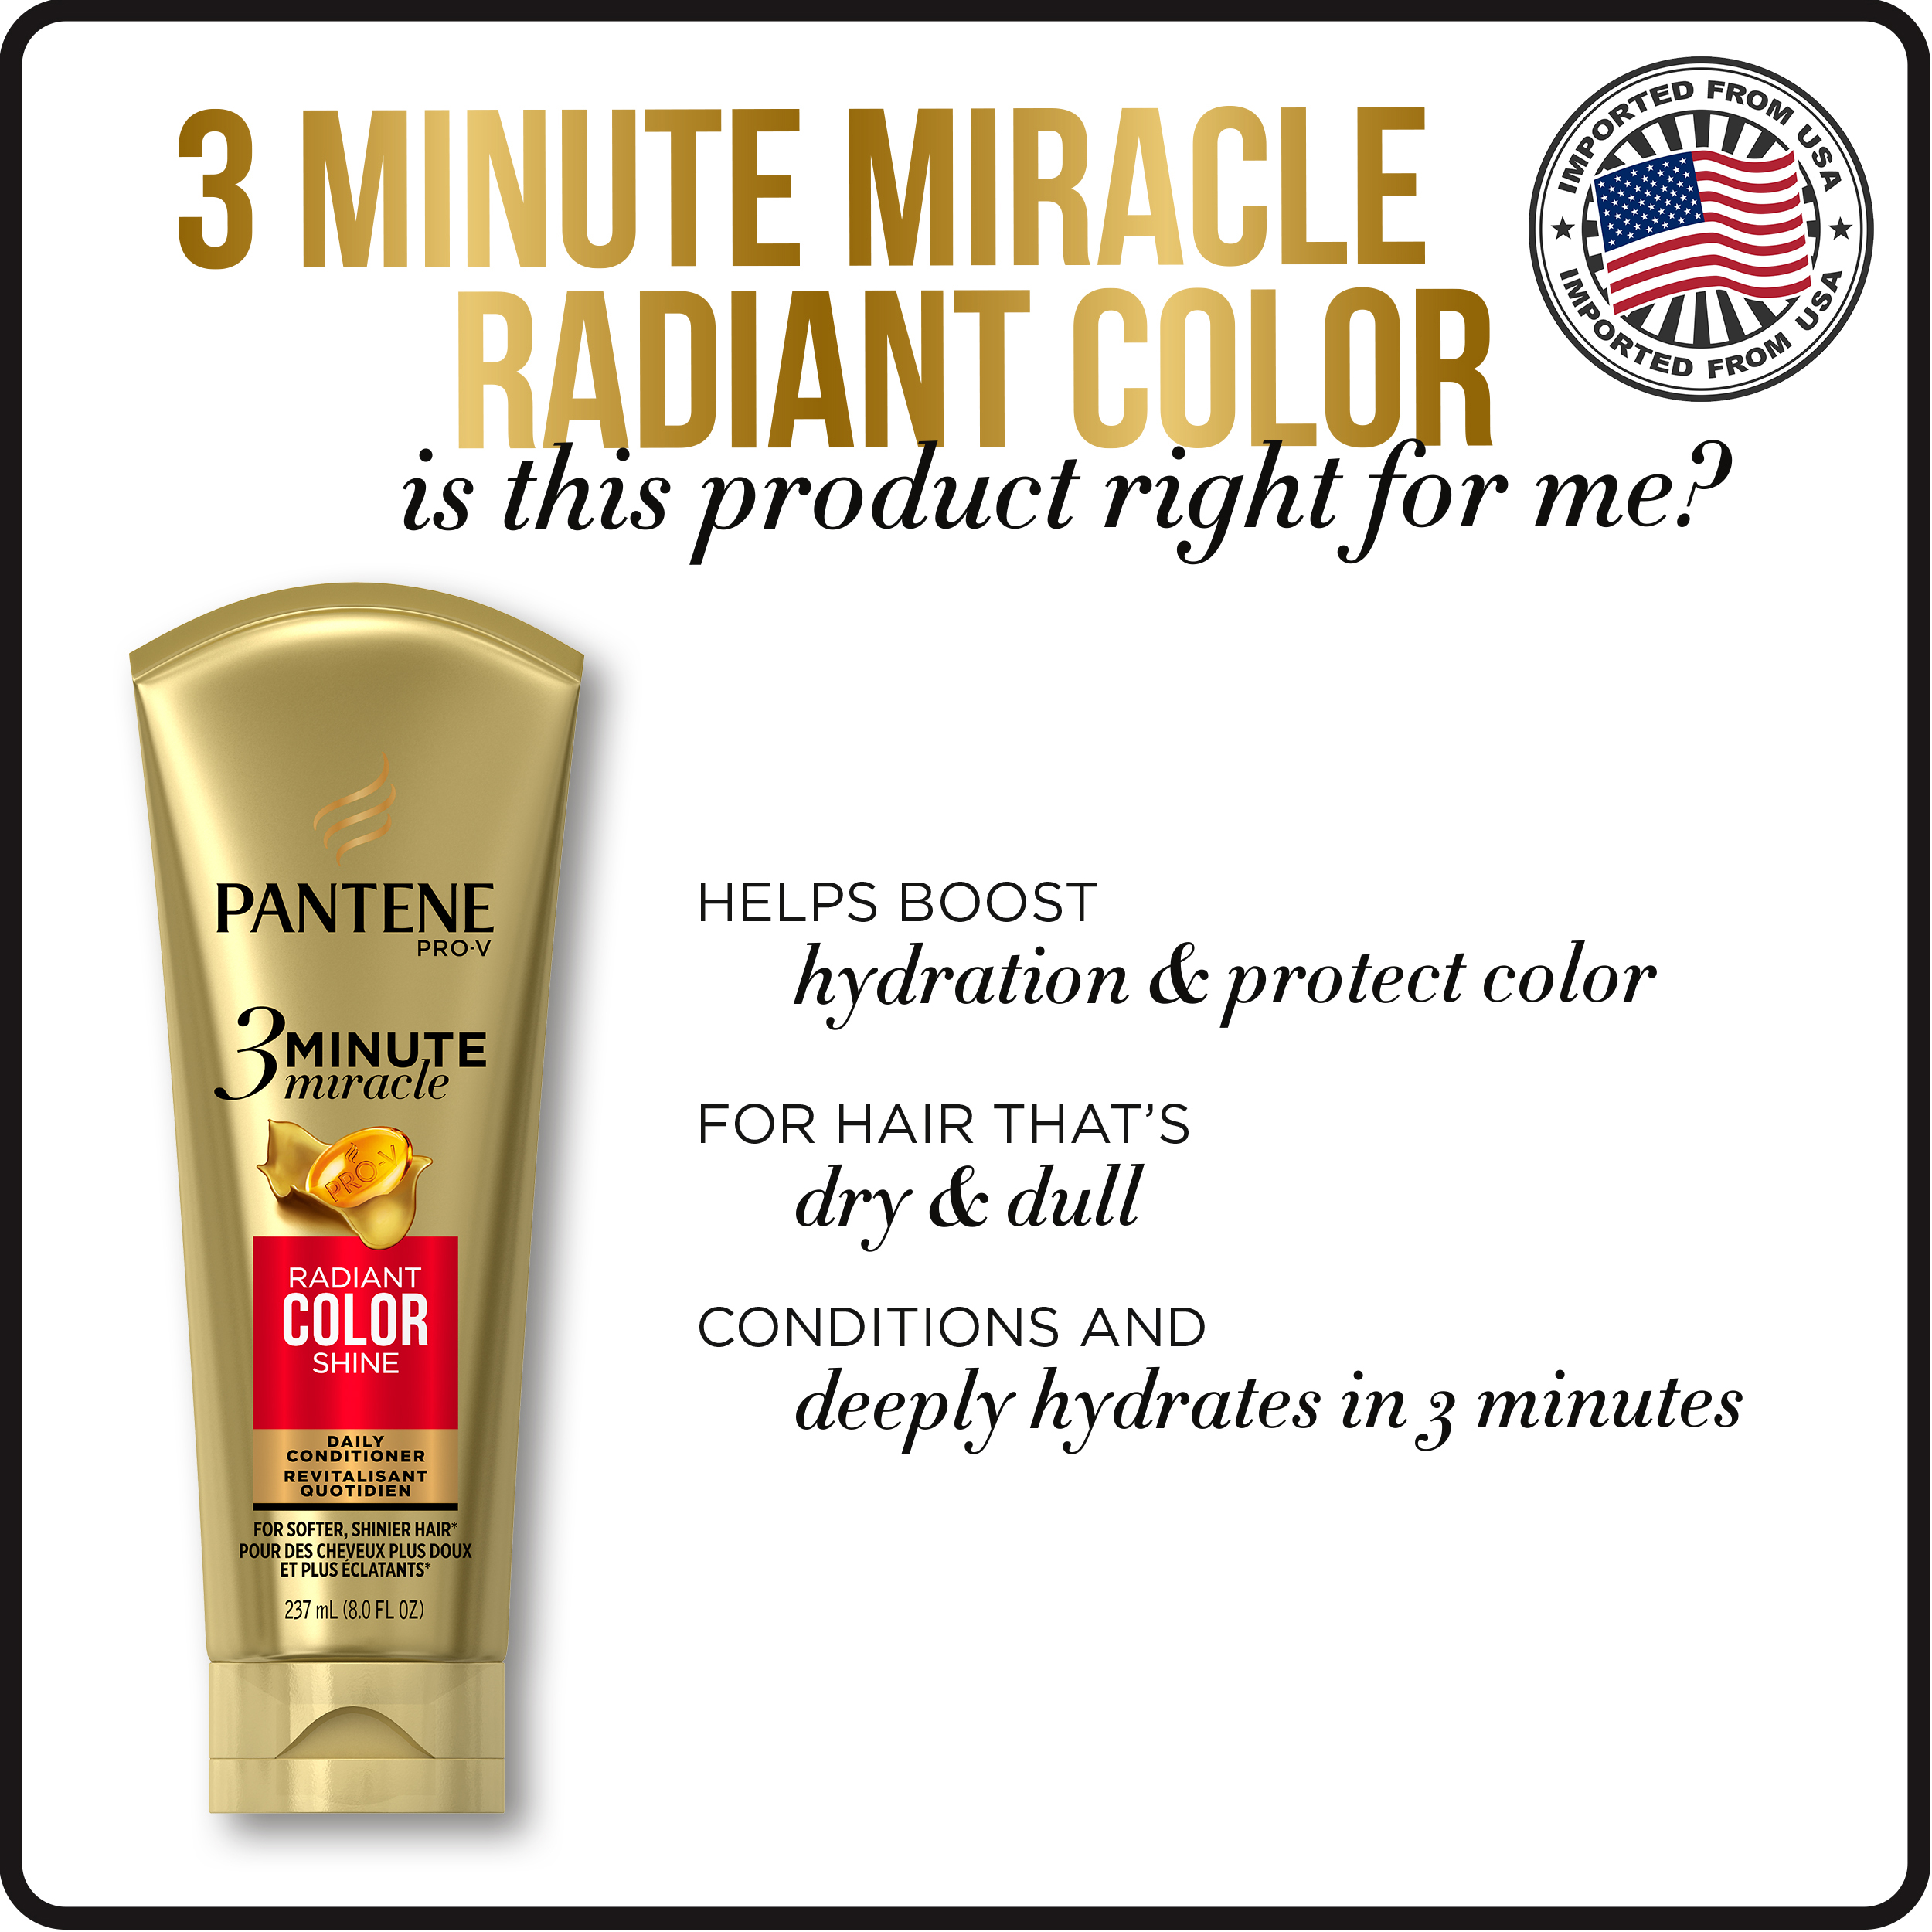 Pantene Radiant Color Shine 3 Minute Miracle Daily Conditioner 180 ml